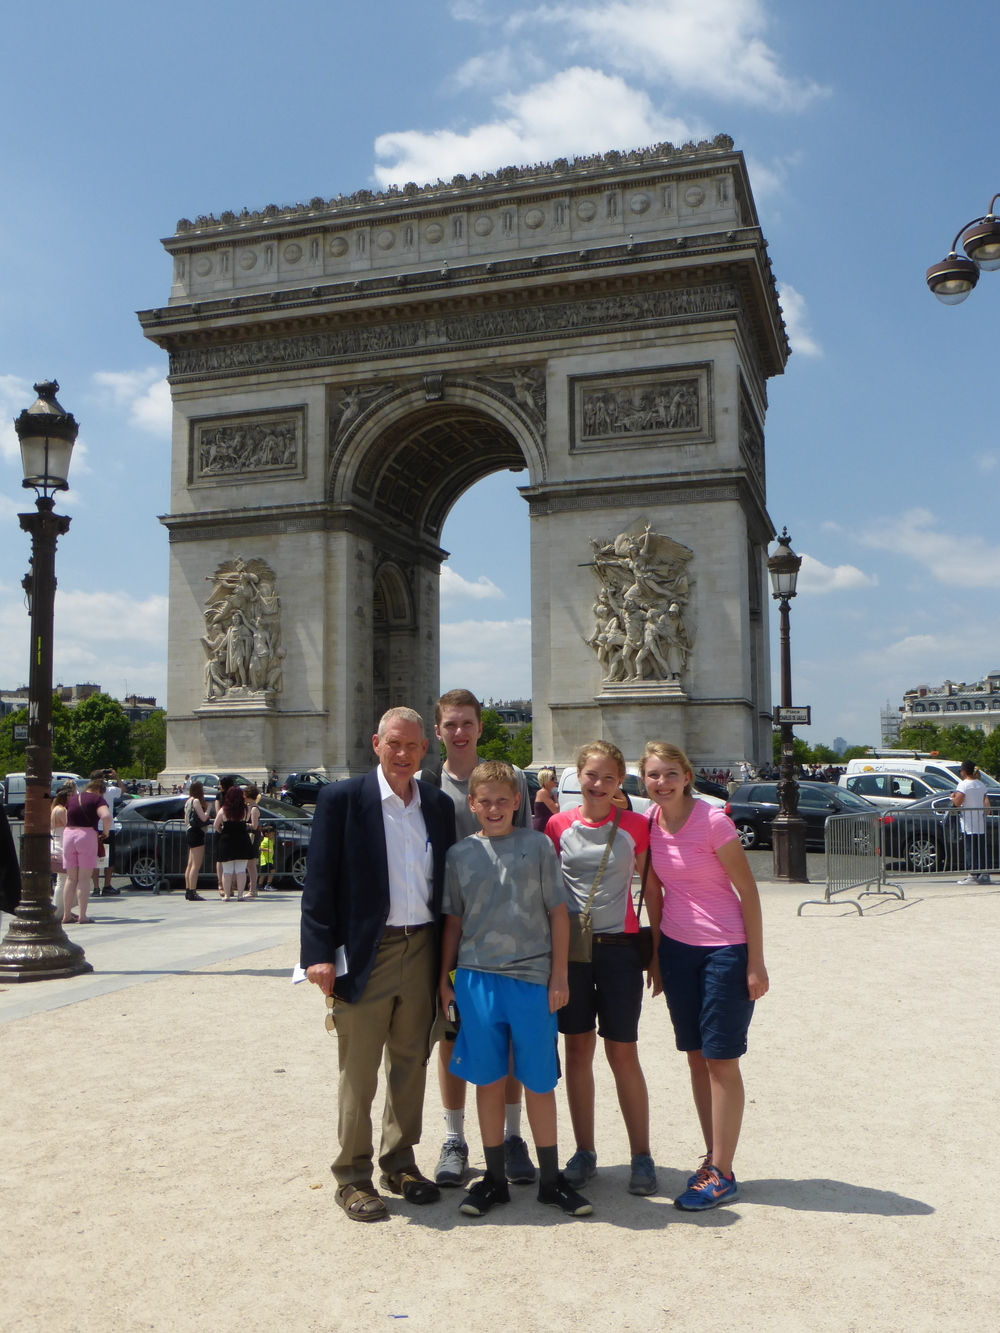 At the Arc de Triomphe.